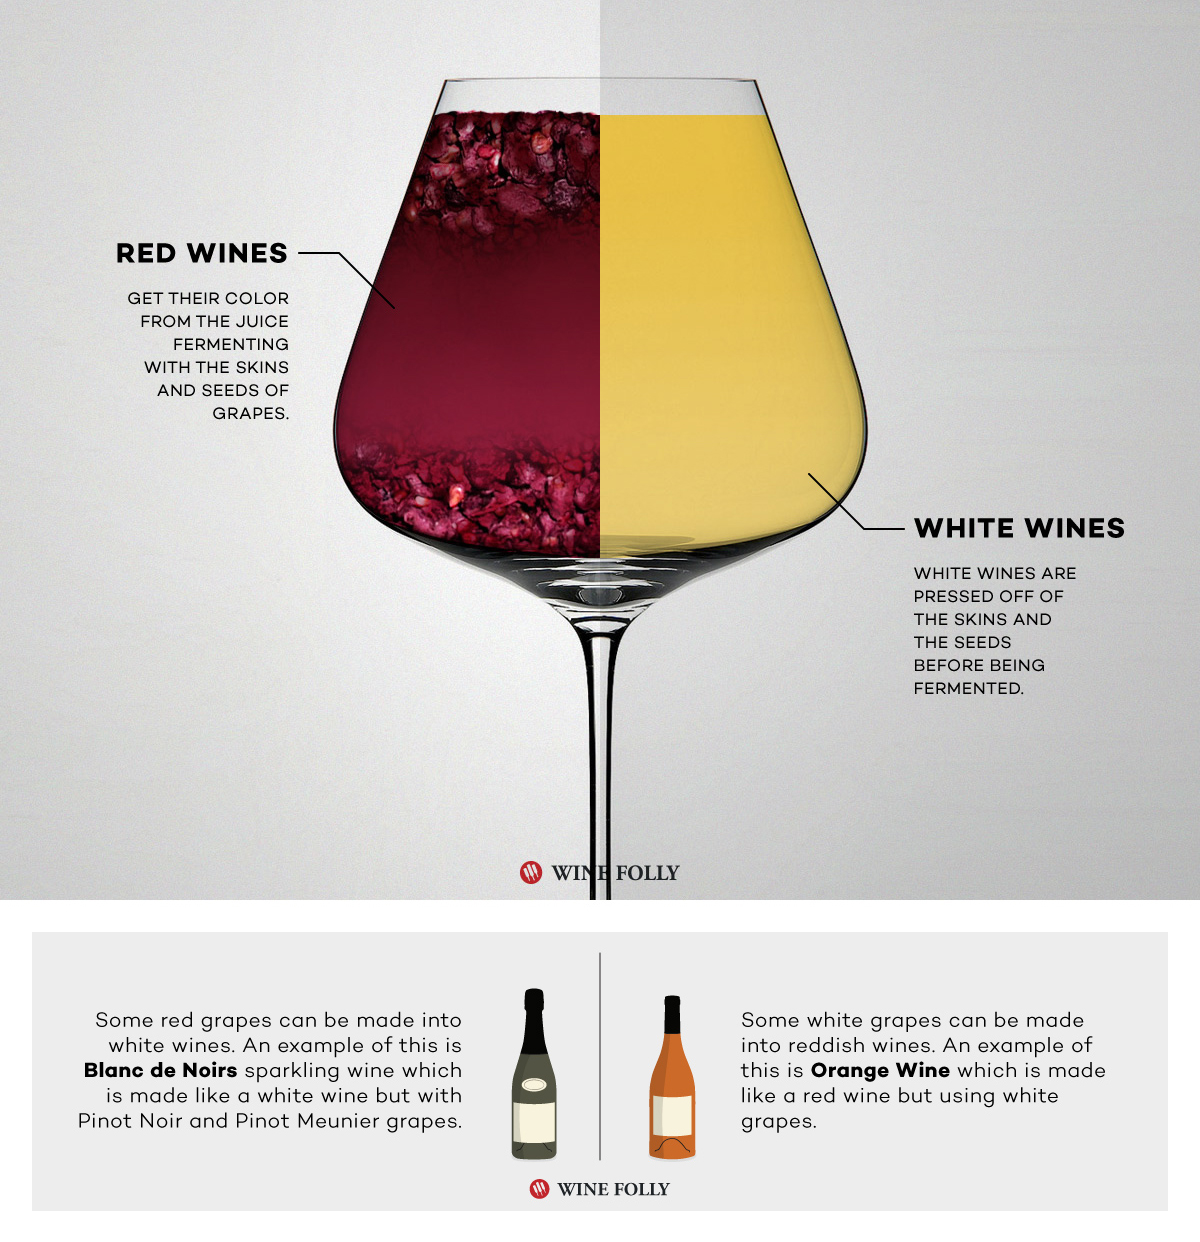 Red wine vs white wine is fermented differently by Wine Folly